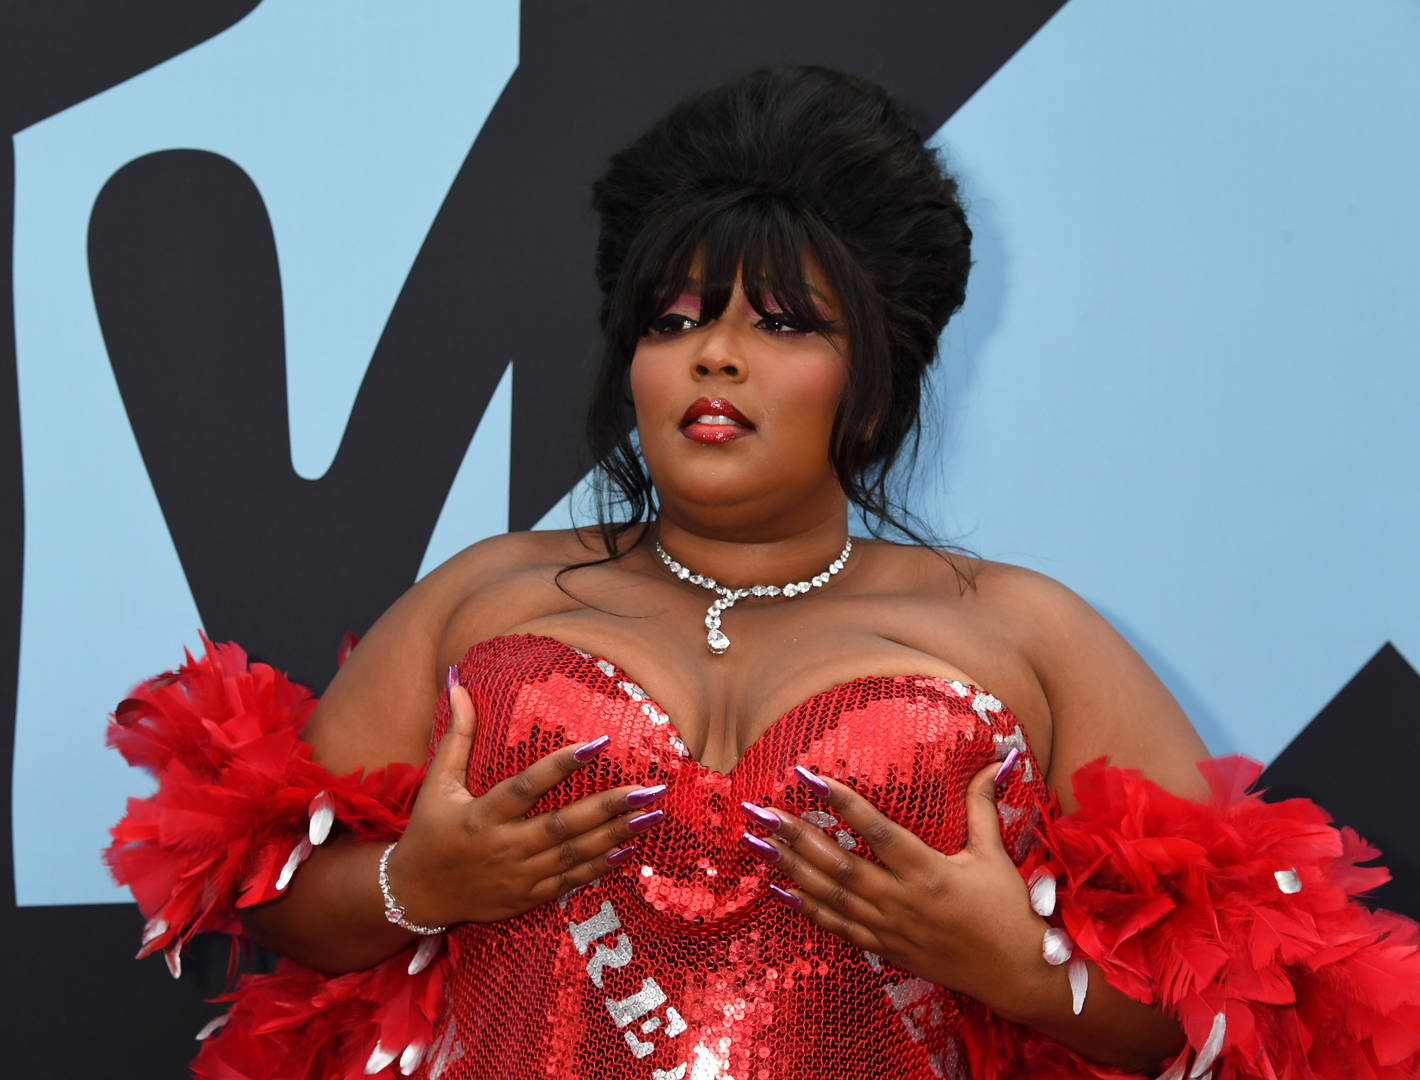 Lizzo Sued By Postmates Driver After Defamatory Tweets